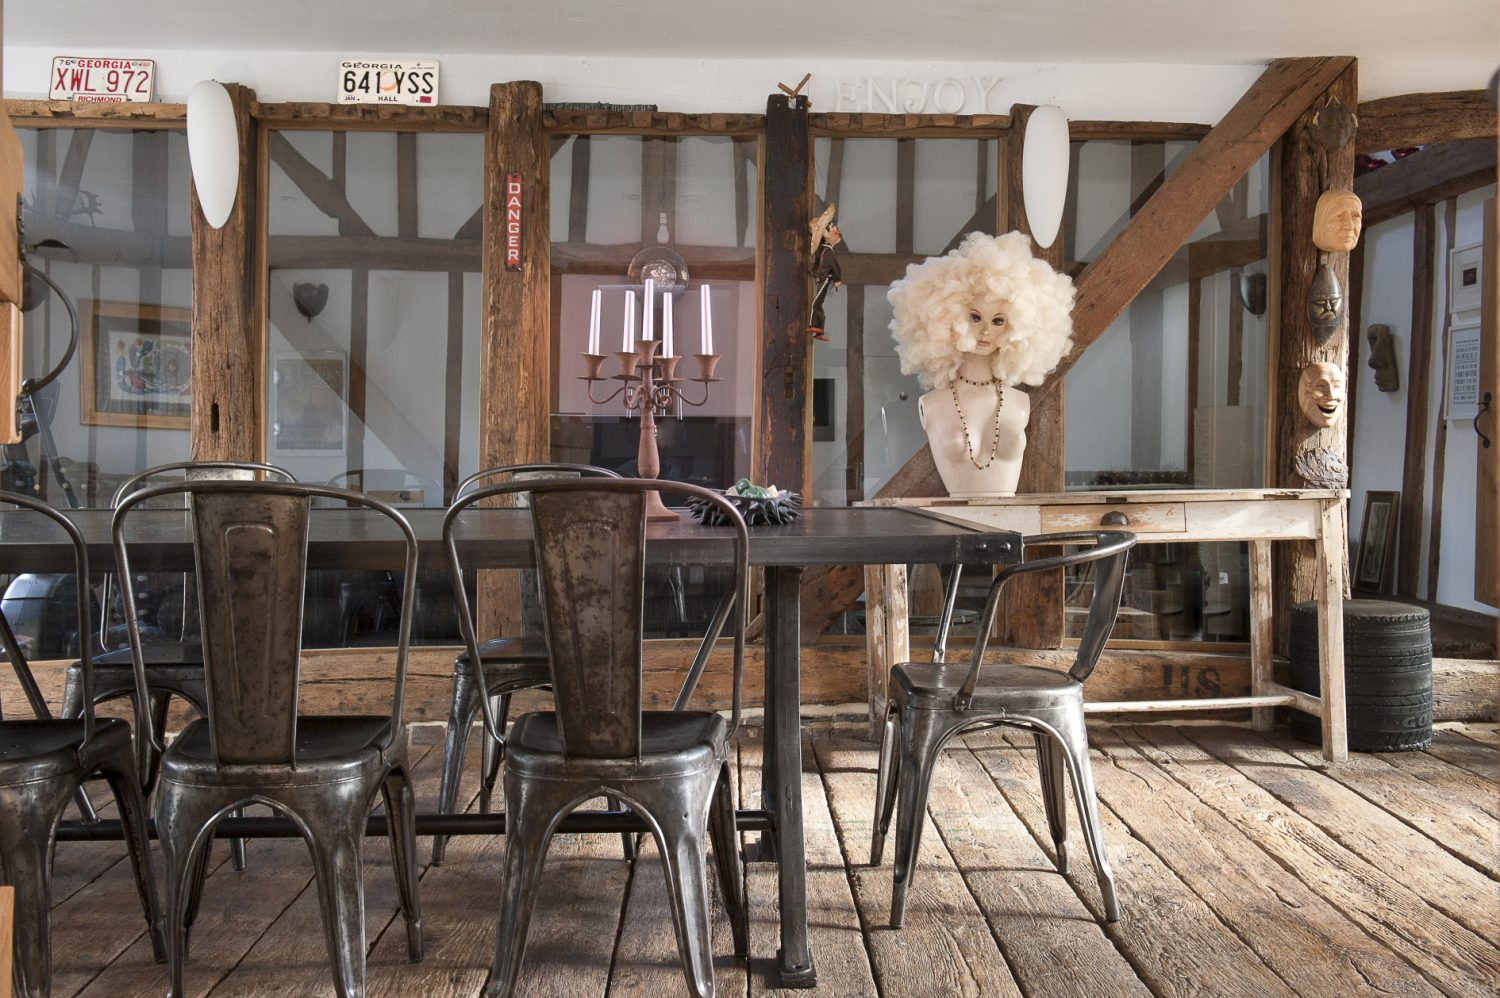 Centrepiece of the heavily timbered dining room is a truly spectacular industrial steel dining table and chairs, made from reclaimed metal by Le Grenier in Lille